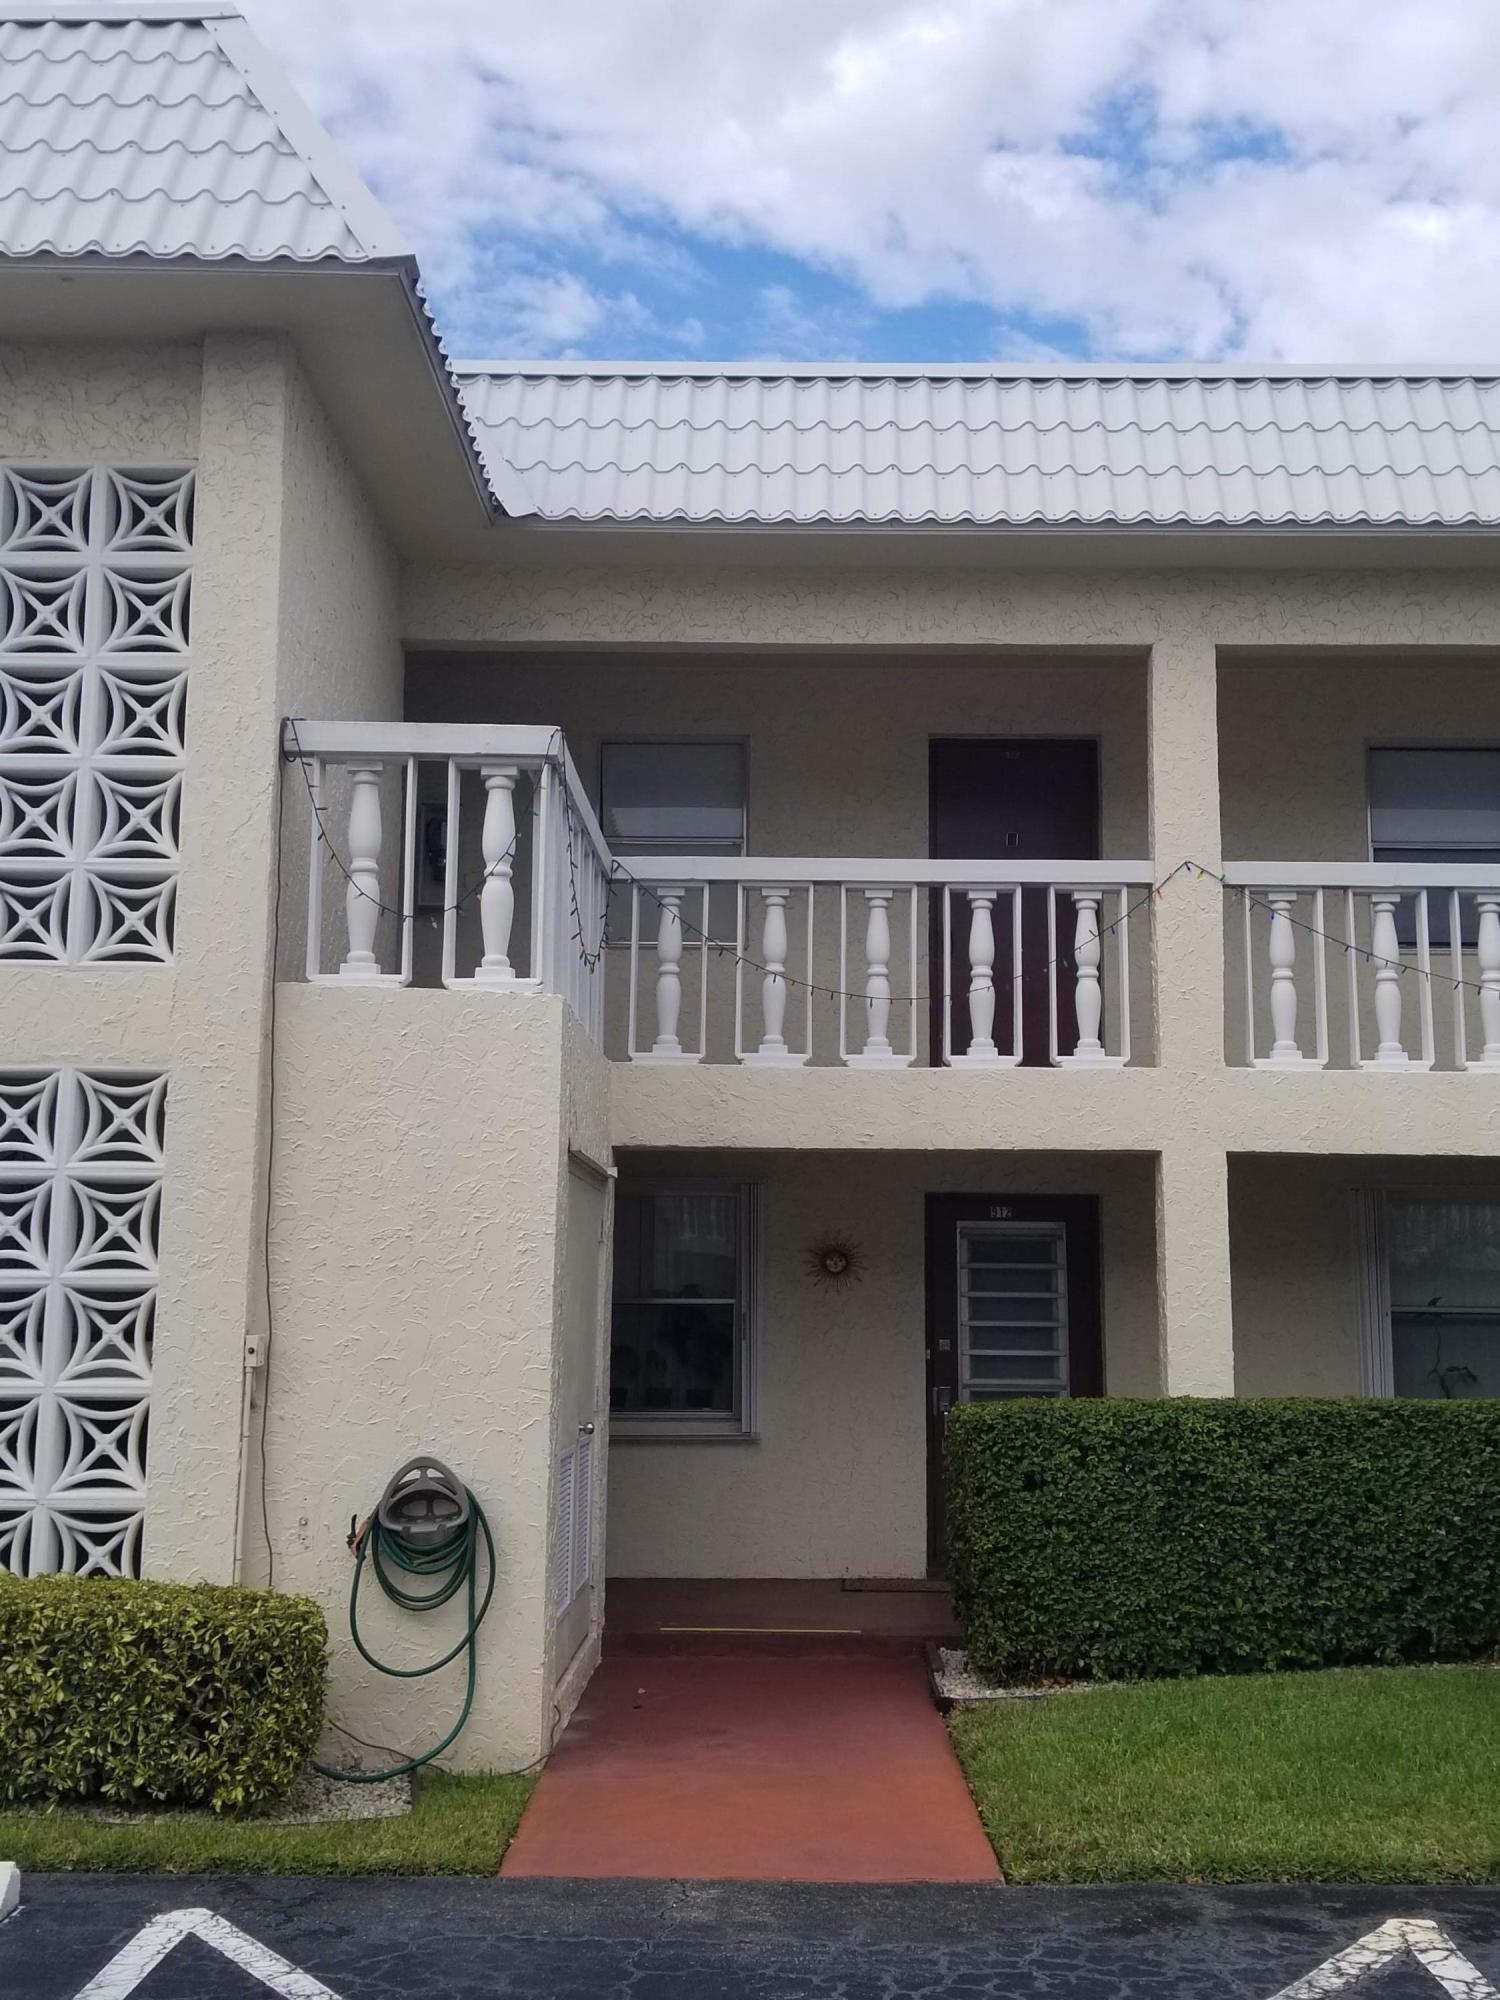 SANDALFOOT SOUTH ONE CONDO PT OF LTS 12, REAL ESTATE